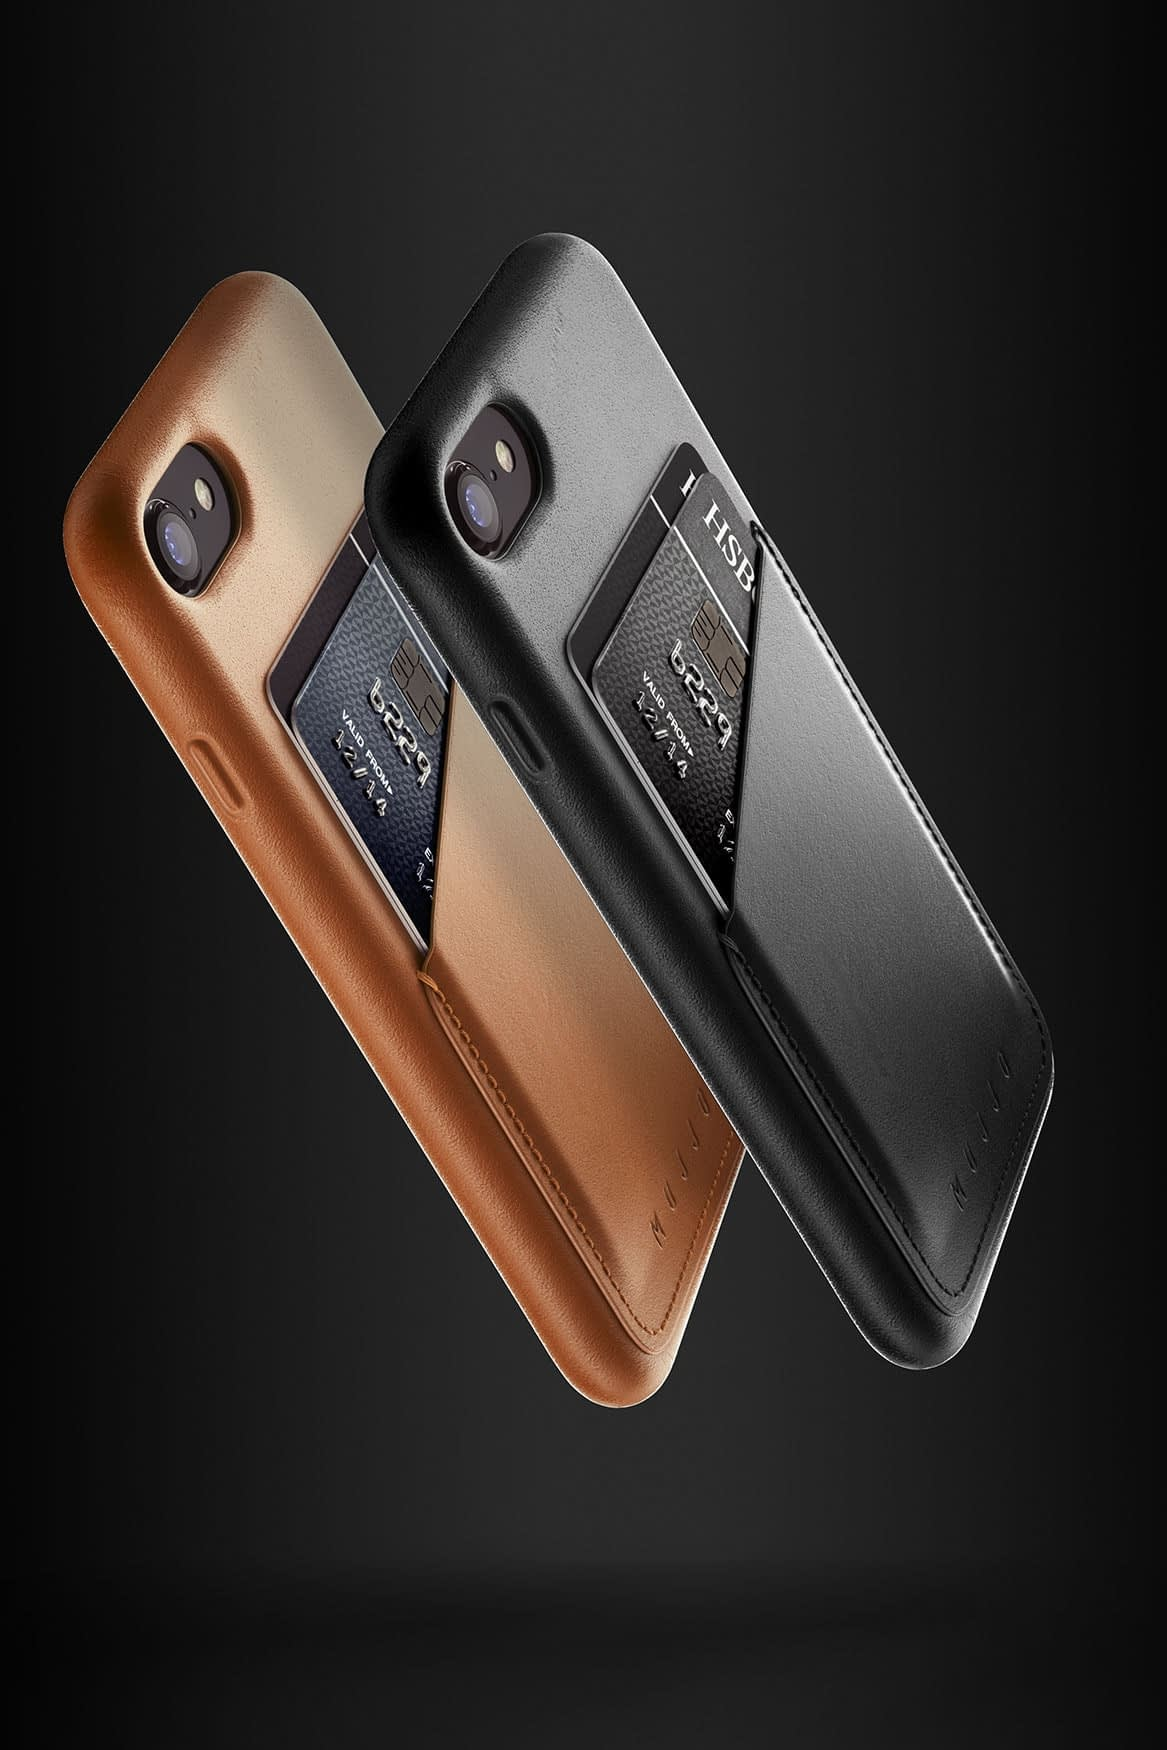 Full leather wallet case for iPhone 8 Black Line up 04